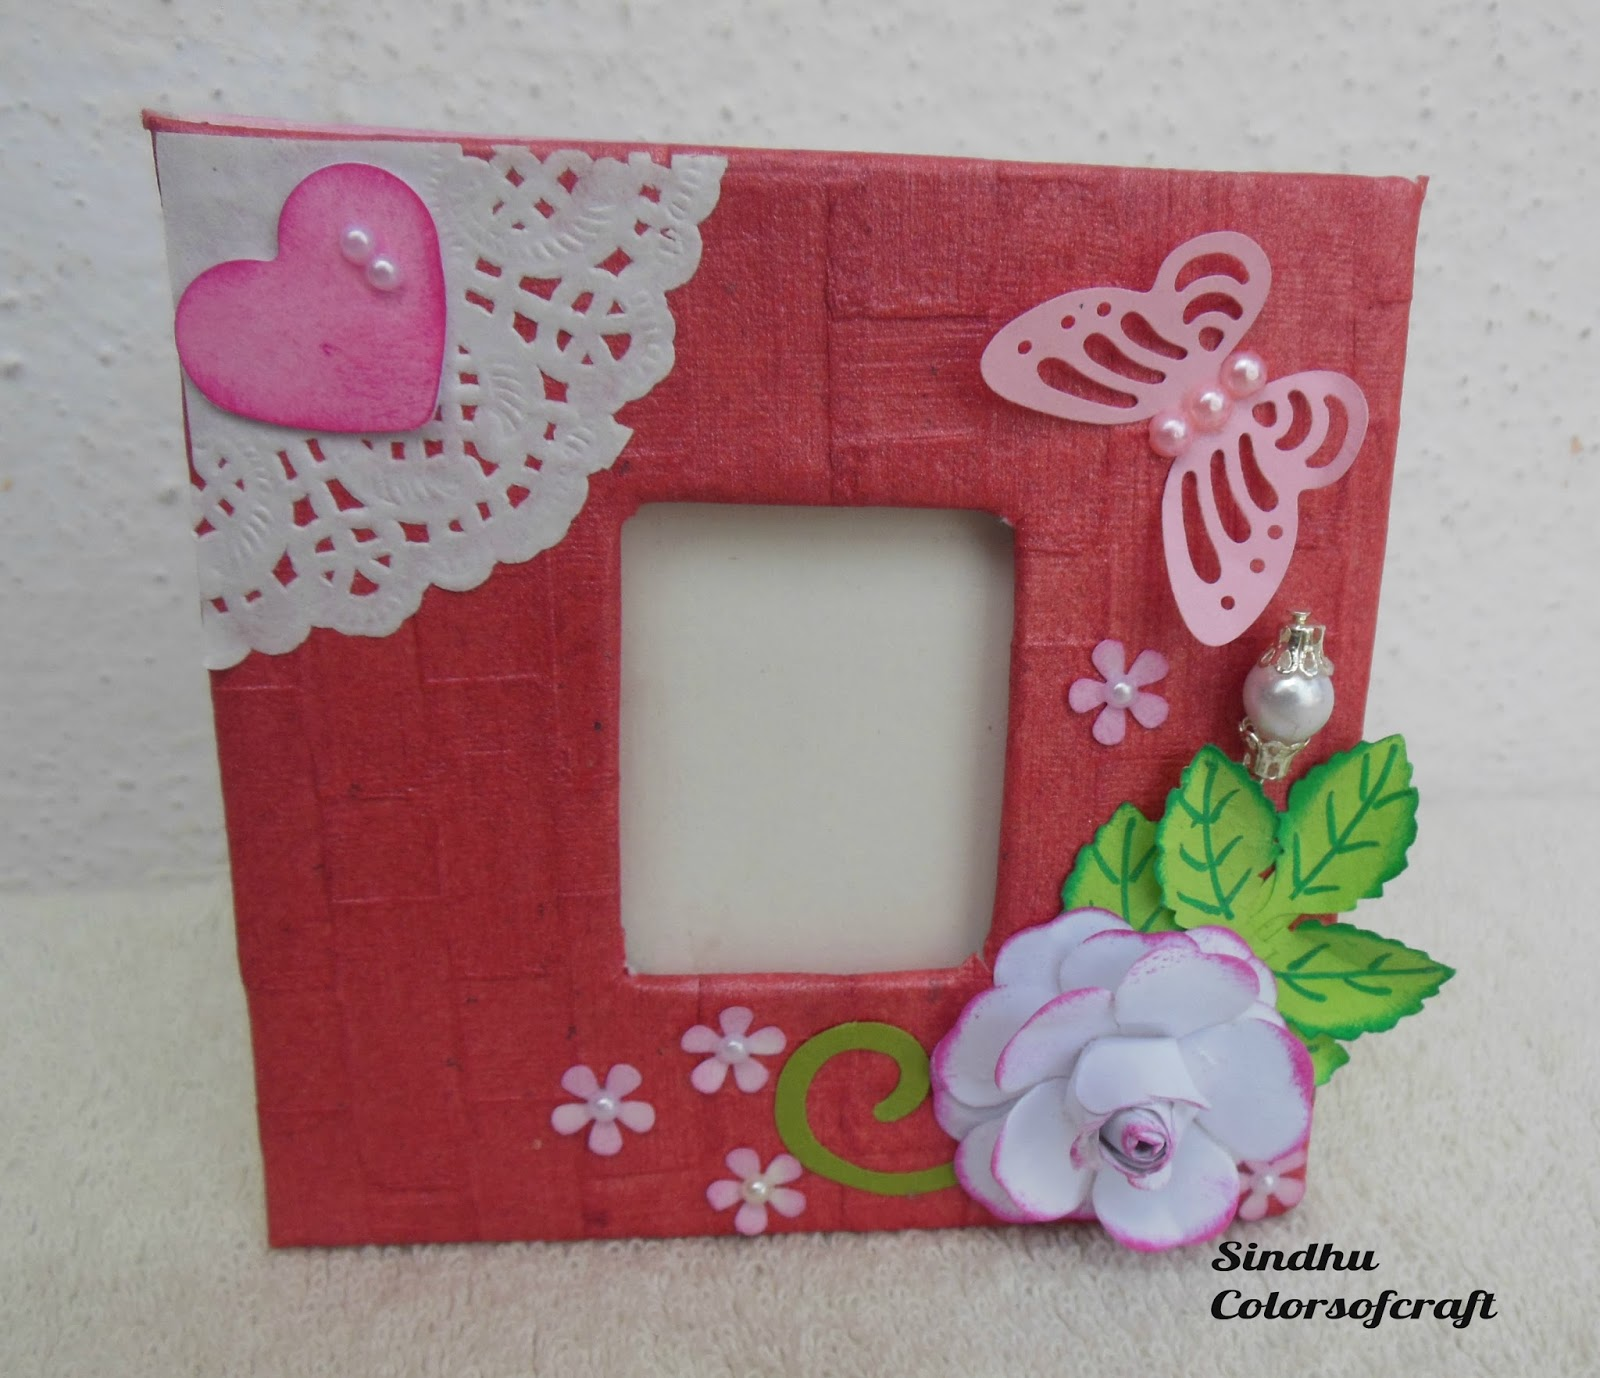 Colors of My Crafty World: October 2015